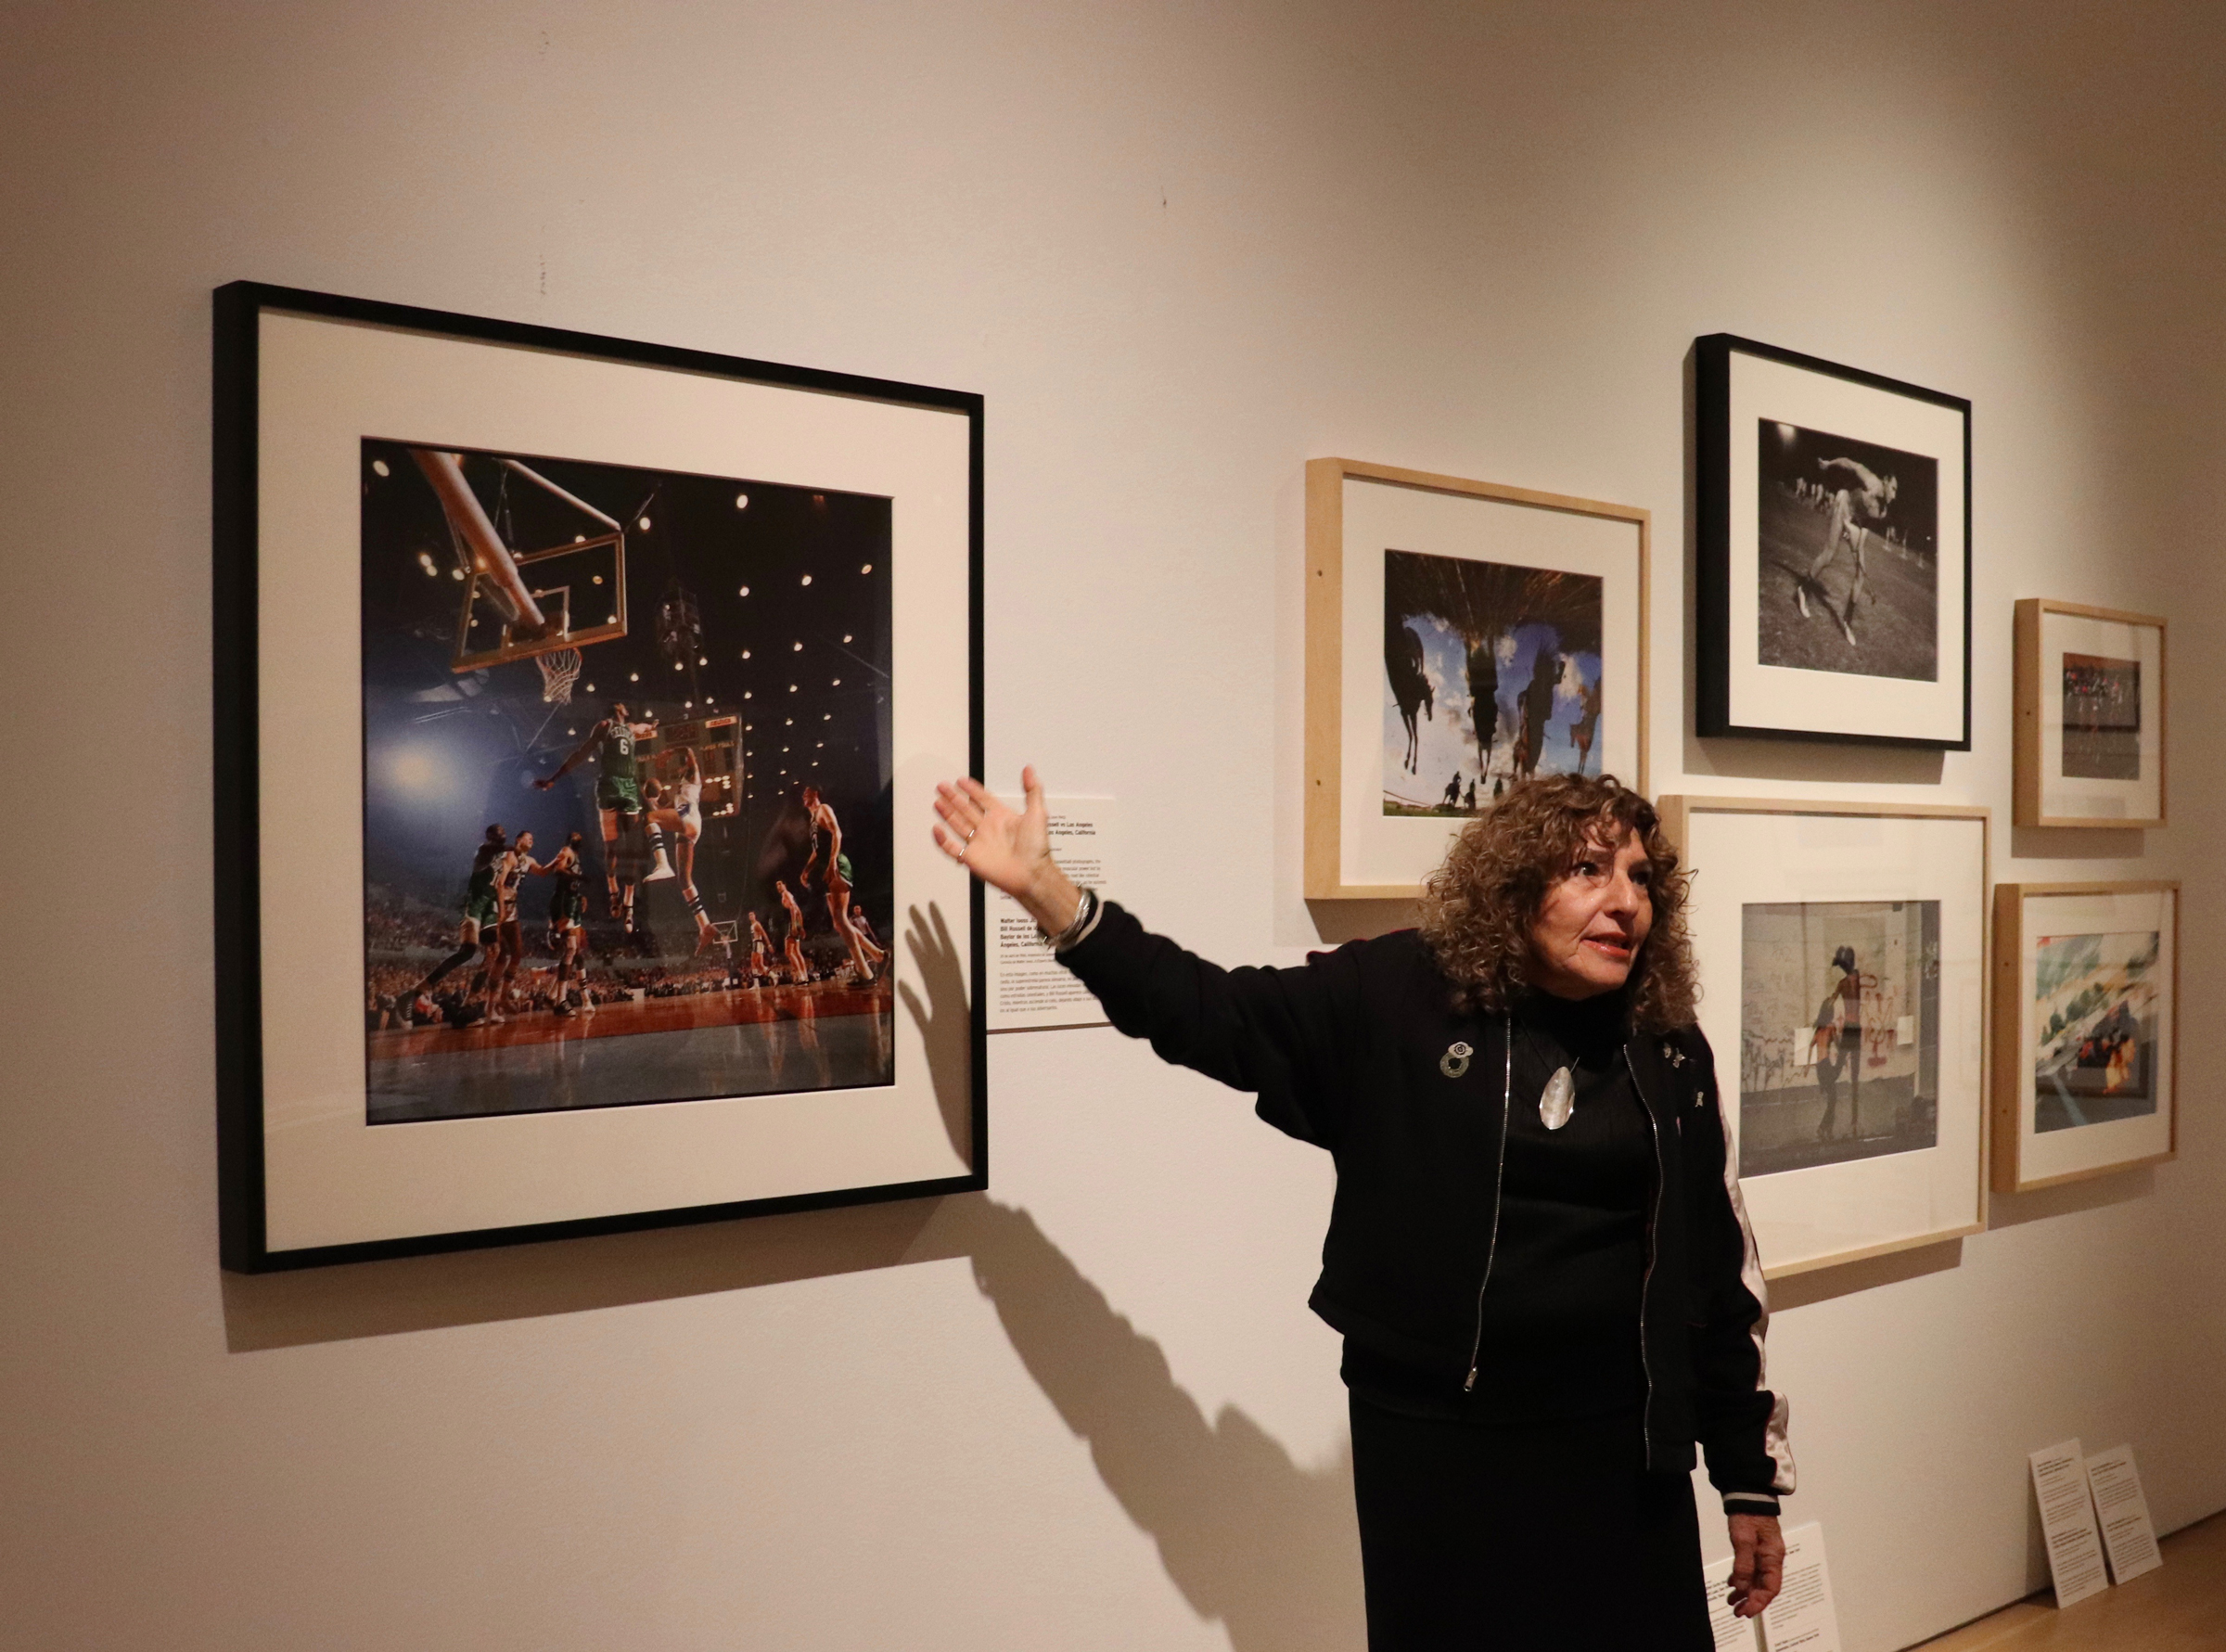 *Main photo: Gail Buckland is the curator of the new exhibition at the Grand Rapids Art Museum featuring sports photography from the 1840s to the present. At her left is a striking image of the 1966 NBA Finals. (Photo by Sam Easter for GR|MAG)